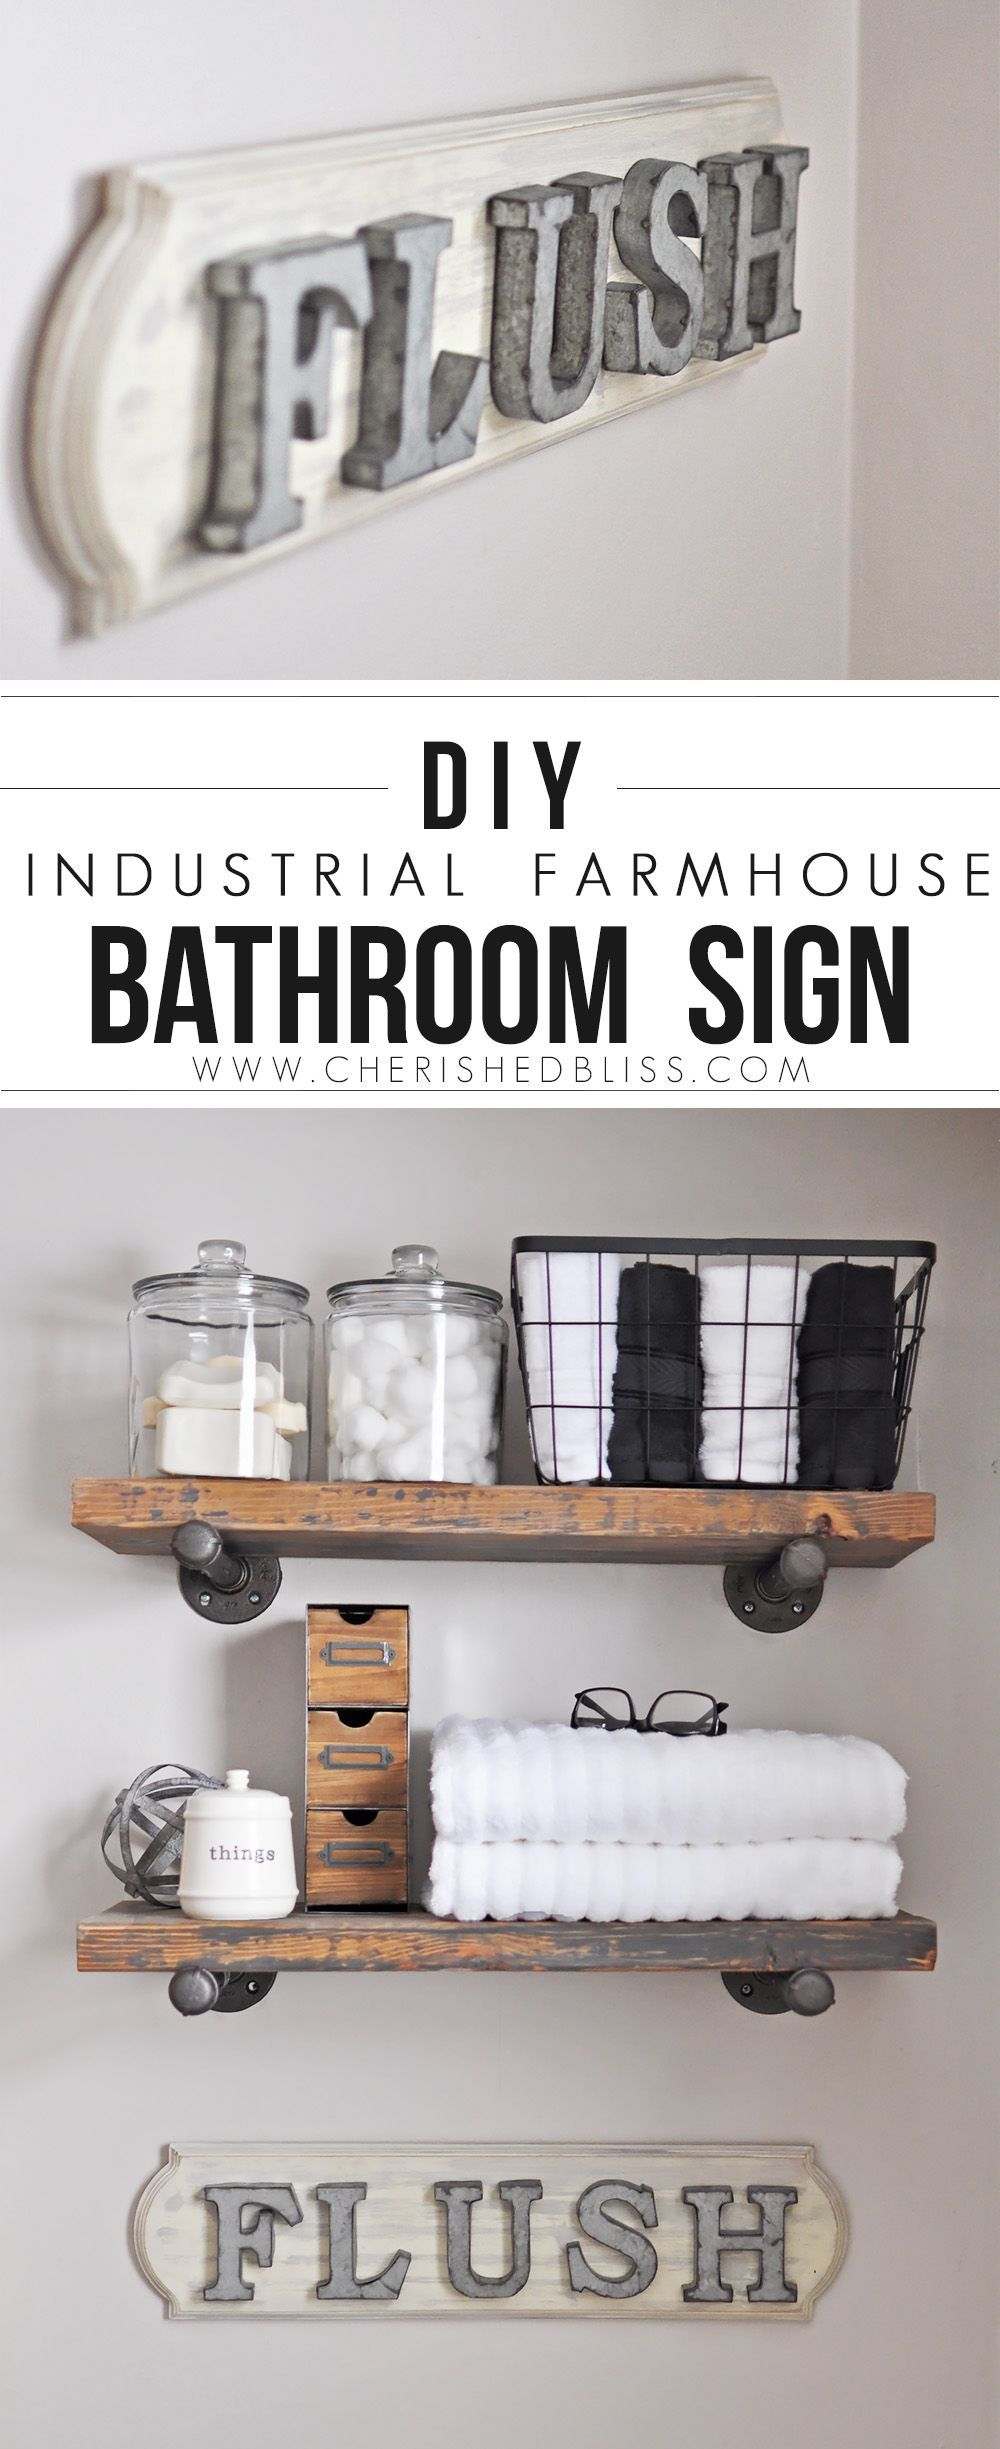 Create this adorable diy industrial farmhouse bathroom sign with